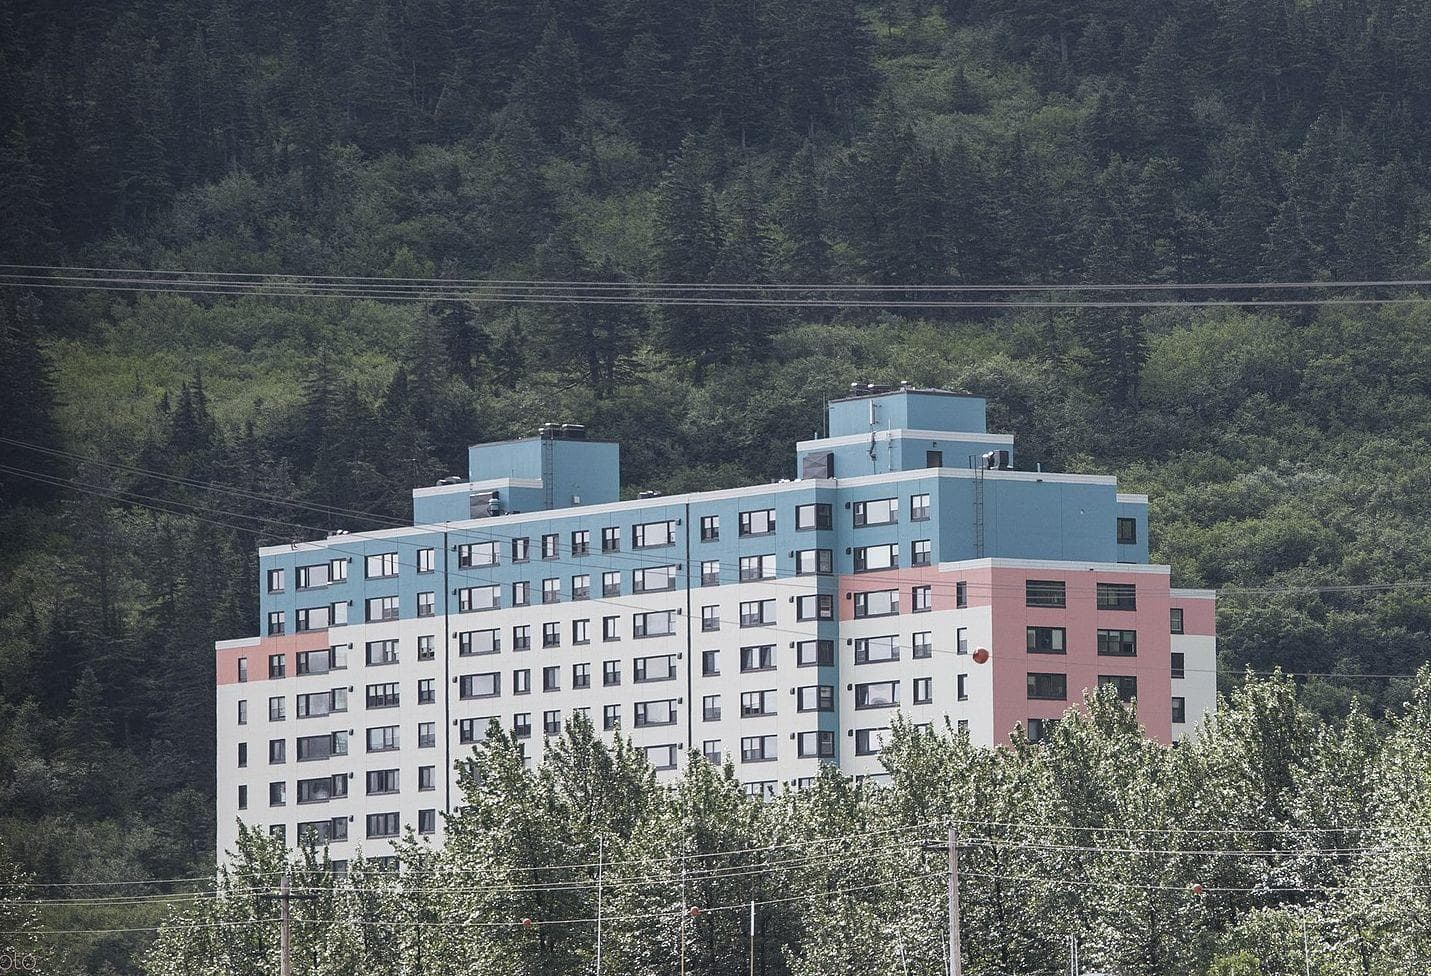 Random Details about Inside Whittier, Alaska, Town Where Everyone Lives In Same Exact Building